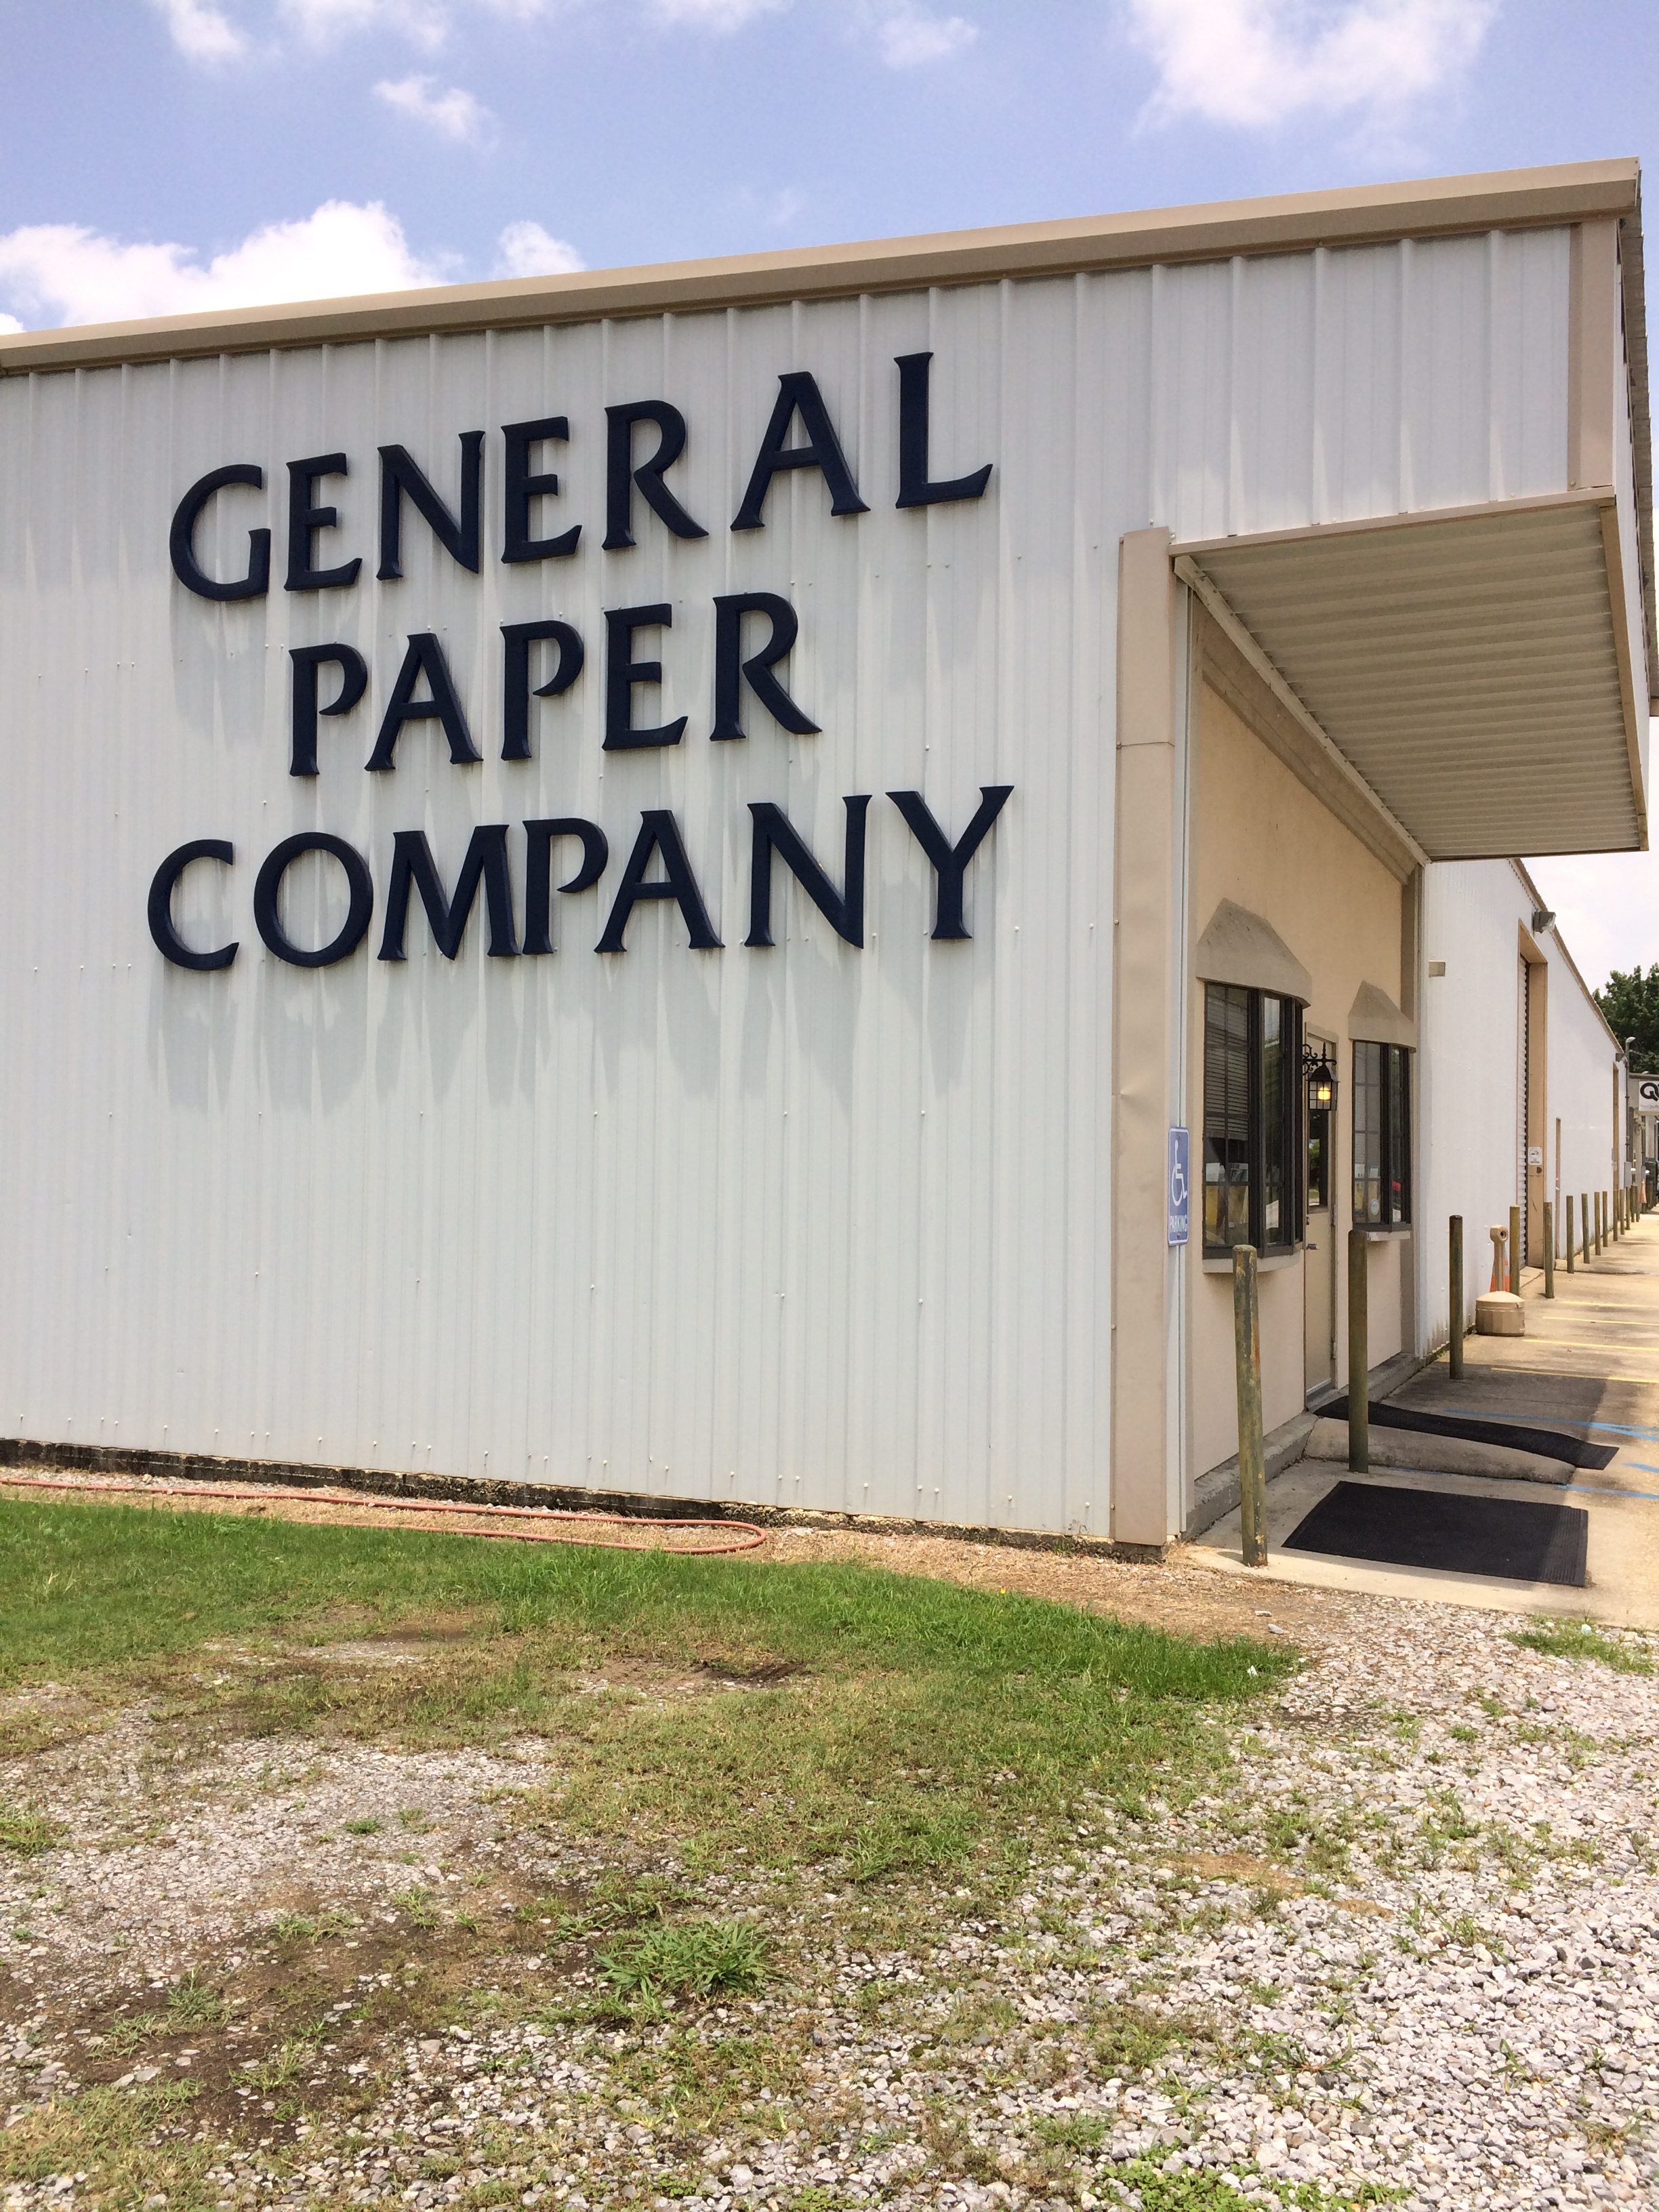 General Paper Company 11091 Airline Hwy Baton Rouge La